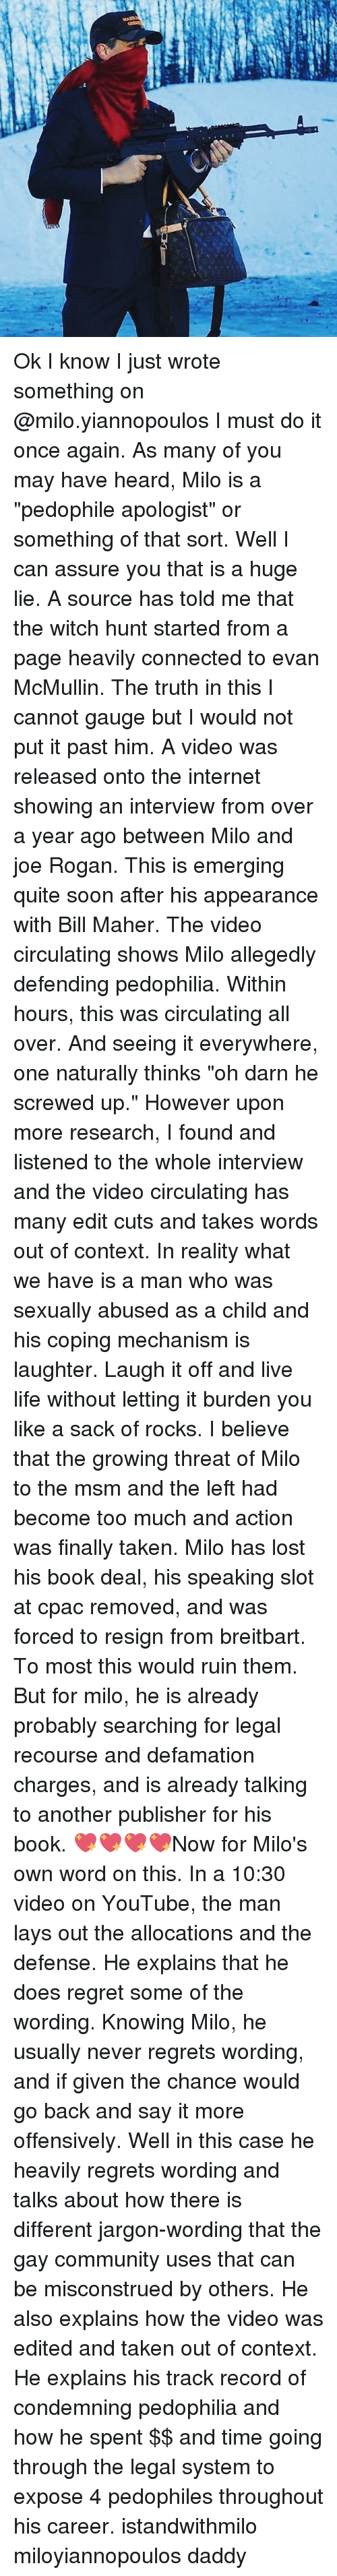 """Pedophillic: Ok I know I just wrote something on @milo.yiannopoulos I must do it once again. As many of you may have heard, Milo is a """"pedophile apologist"""" or something of that sort. Well I can assure you that is a huge lie. A source has told me that the witch hunt started from a page heavily connected to evan McMullin. The truth in this I cannot gauge but I would not put it past him. A video was released onto the internet showing an interview from over a year ago between Milo and joe Rogan. This is emerging quite soon after his appearance with Bill Maher. The video circulating shows Milo allegedly defending pedophilia. Within hours, this was circulating all over. And seeing it everywhere, one naturally thinks """"oh darn he screwed up."""" However upon more research, I found and listened to the whole interview and the video circulating has many edit cuts and takes words out of context. In reality what we have is a man who was sexually abused as a child and his coping mechanism is laughter. Laugh it off and live life without letting it burden you like a sack of rocks. I believe that the growing threat of Milo to the msm and the left had become too much and action was finally taken. Milo has lost his book deal, his speaking slot at cpac removed, and was forced to resign from breitbart. To most this would ruin them. But for milo, he is already probably searching for legal recourse and defamation charges, and is already talking to another publisher for his book. 💖💖💖💖Now for Milo's own word on this. In a 10:30 video on YouTube, the man lays out the allocations and the defense. He explains that he does regret some of the wording. Knowing Milo, he usually never regrets wording, and if given the chance would go back and say it more offensively. Well in this case he heavily regrets wording and talks about how there is different jargon-wording that the gay community uses that can be misconstrued by others. He also explains how the video was edited and taken out of context. He expl"""